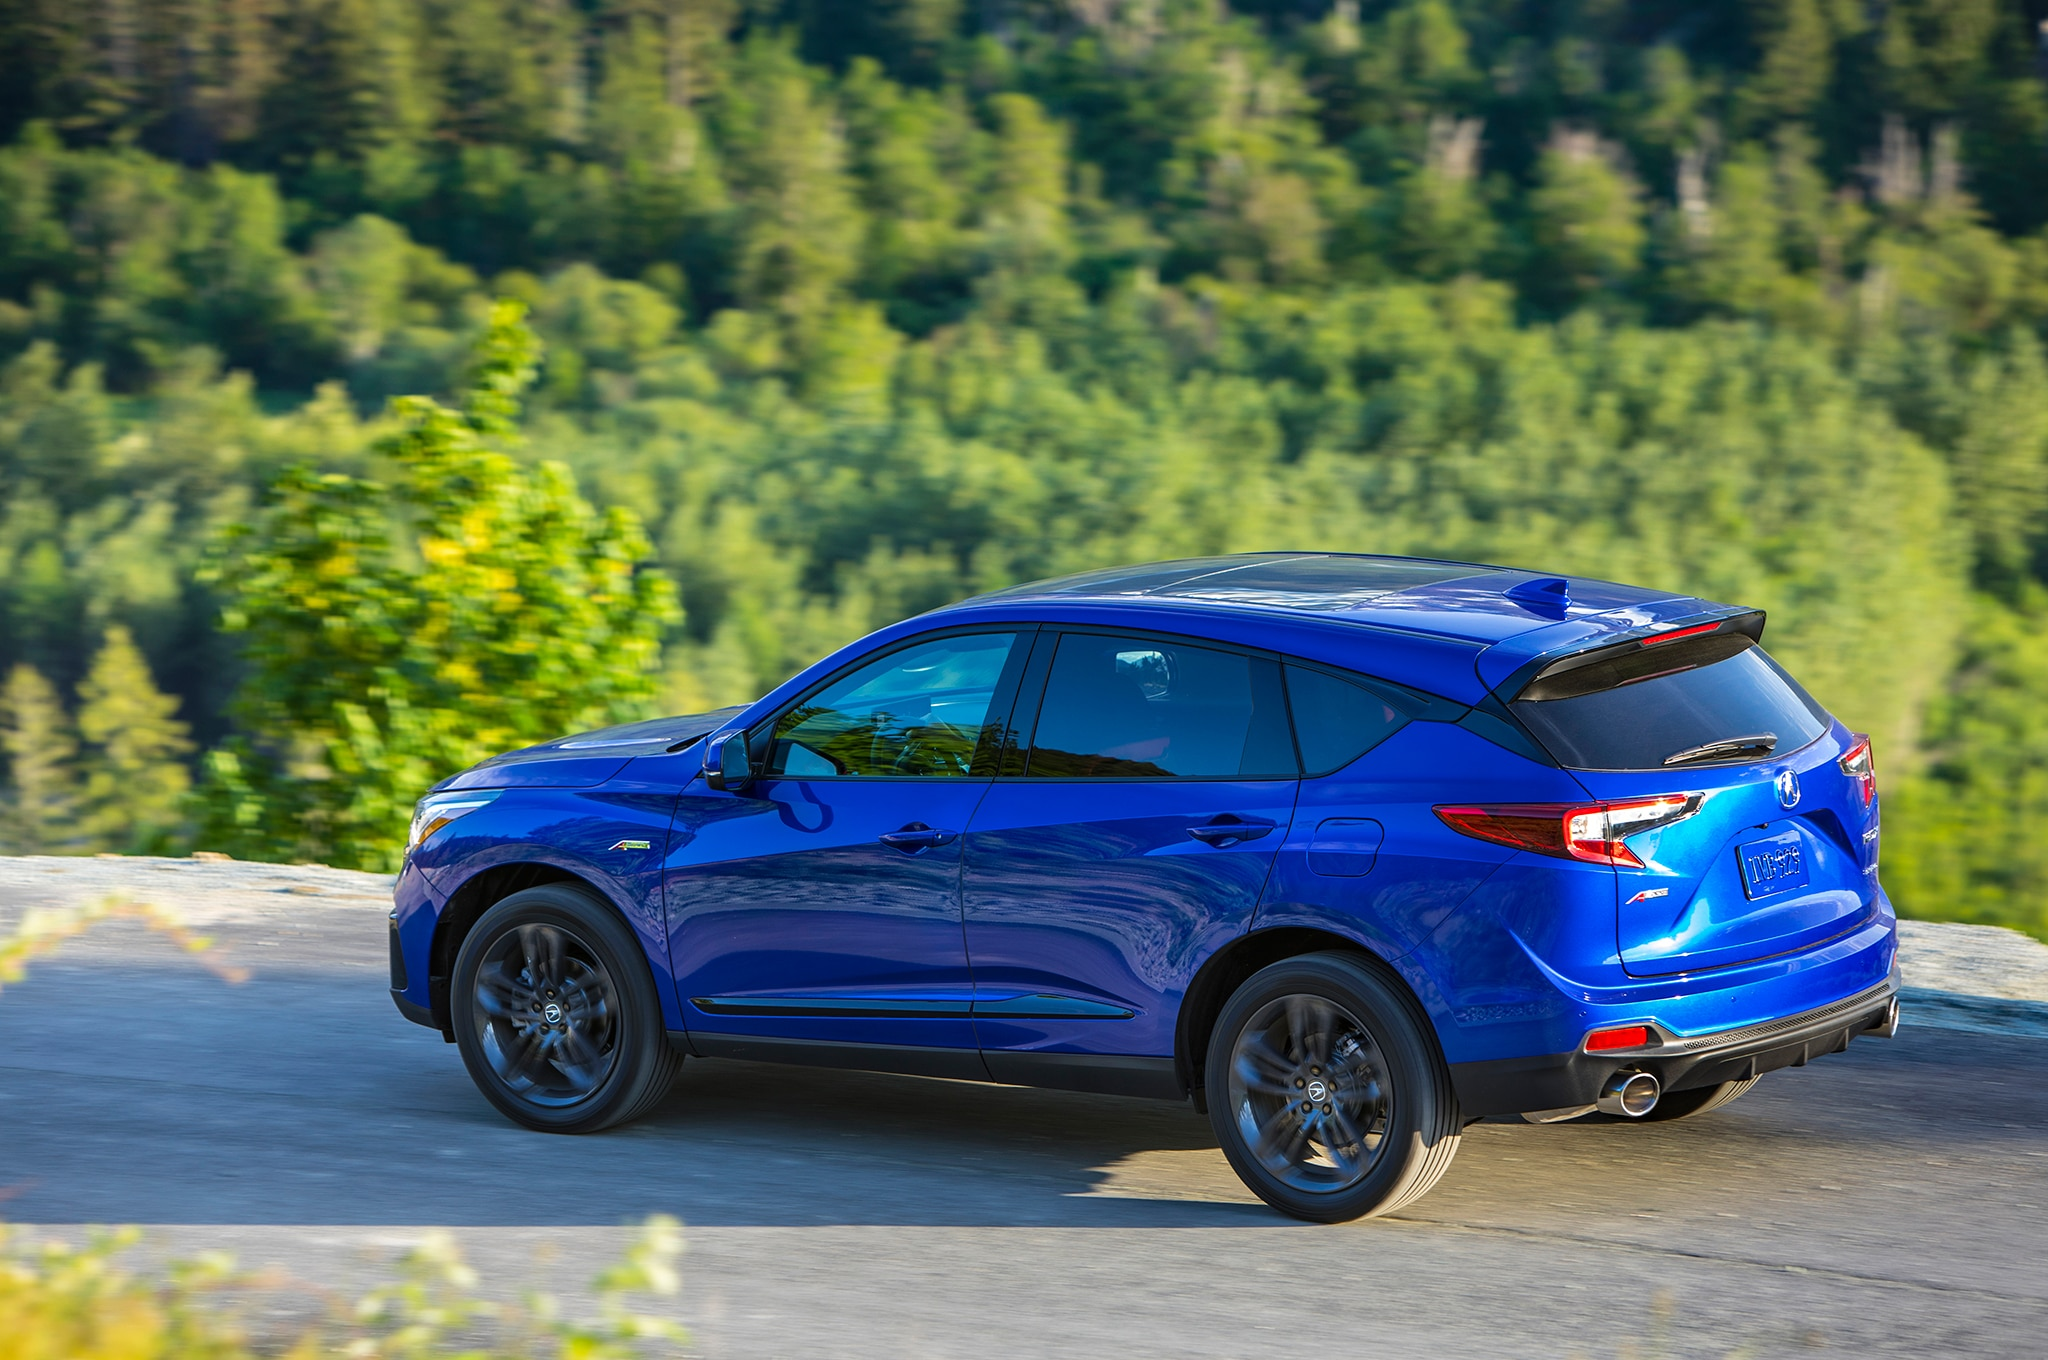 2019 Acura Rdx First Drive Review Automobile Magazine